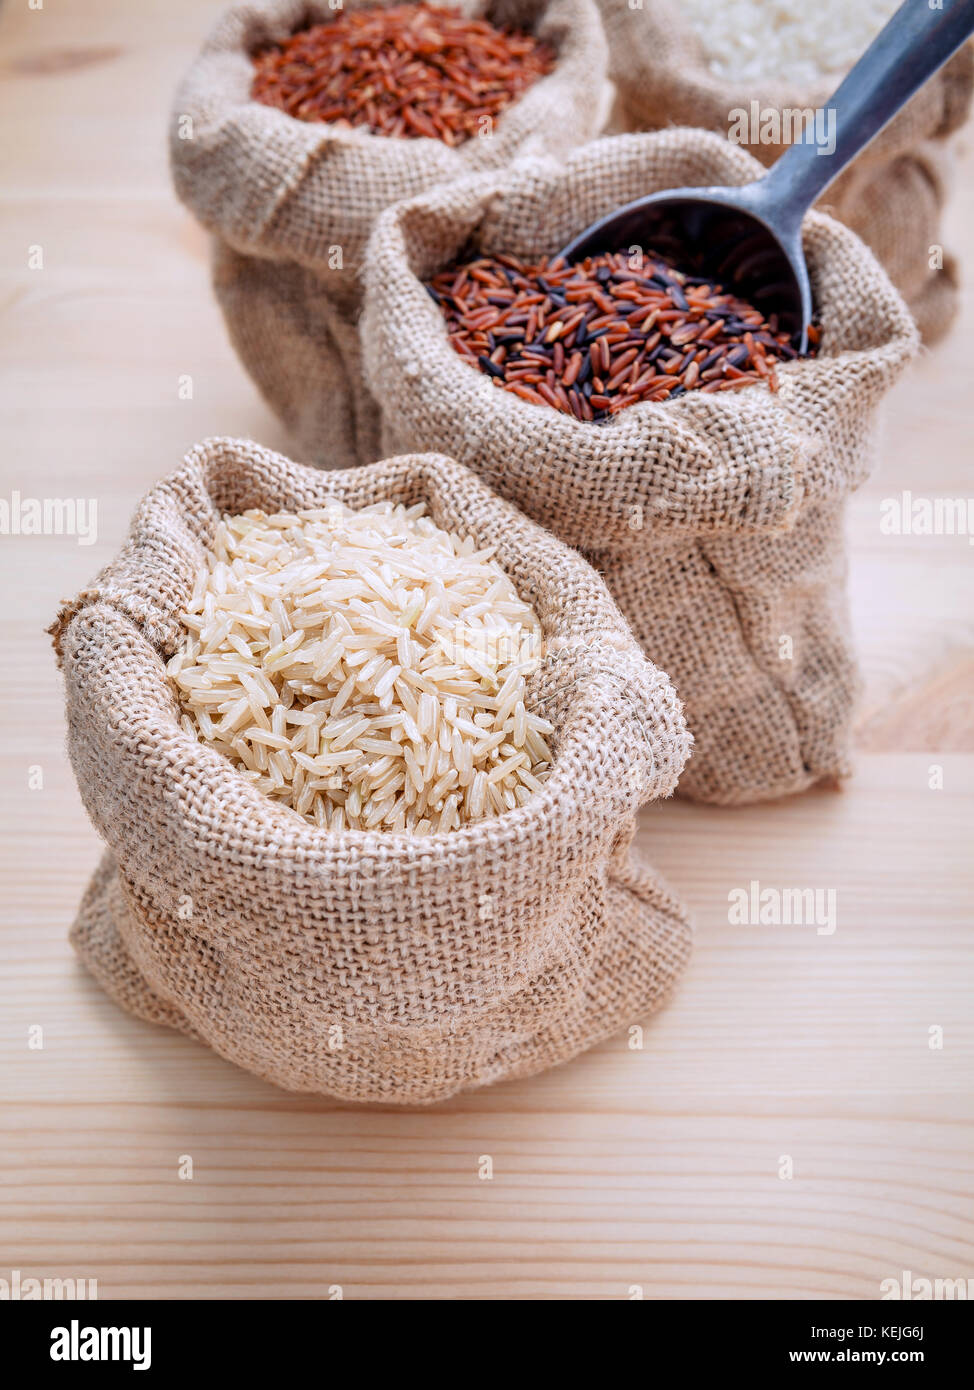 Mixed whole grain traditional thai rices best rices for healthy and super food in hemp sacks bag setup on wooden Stock Photo